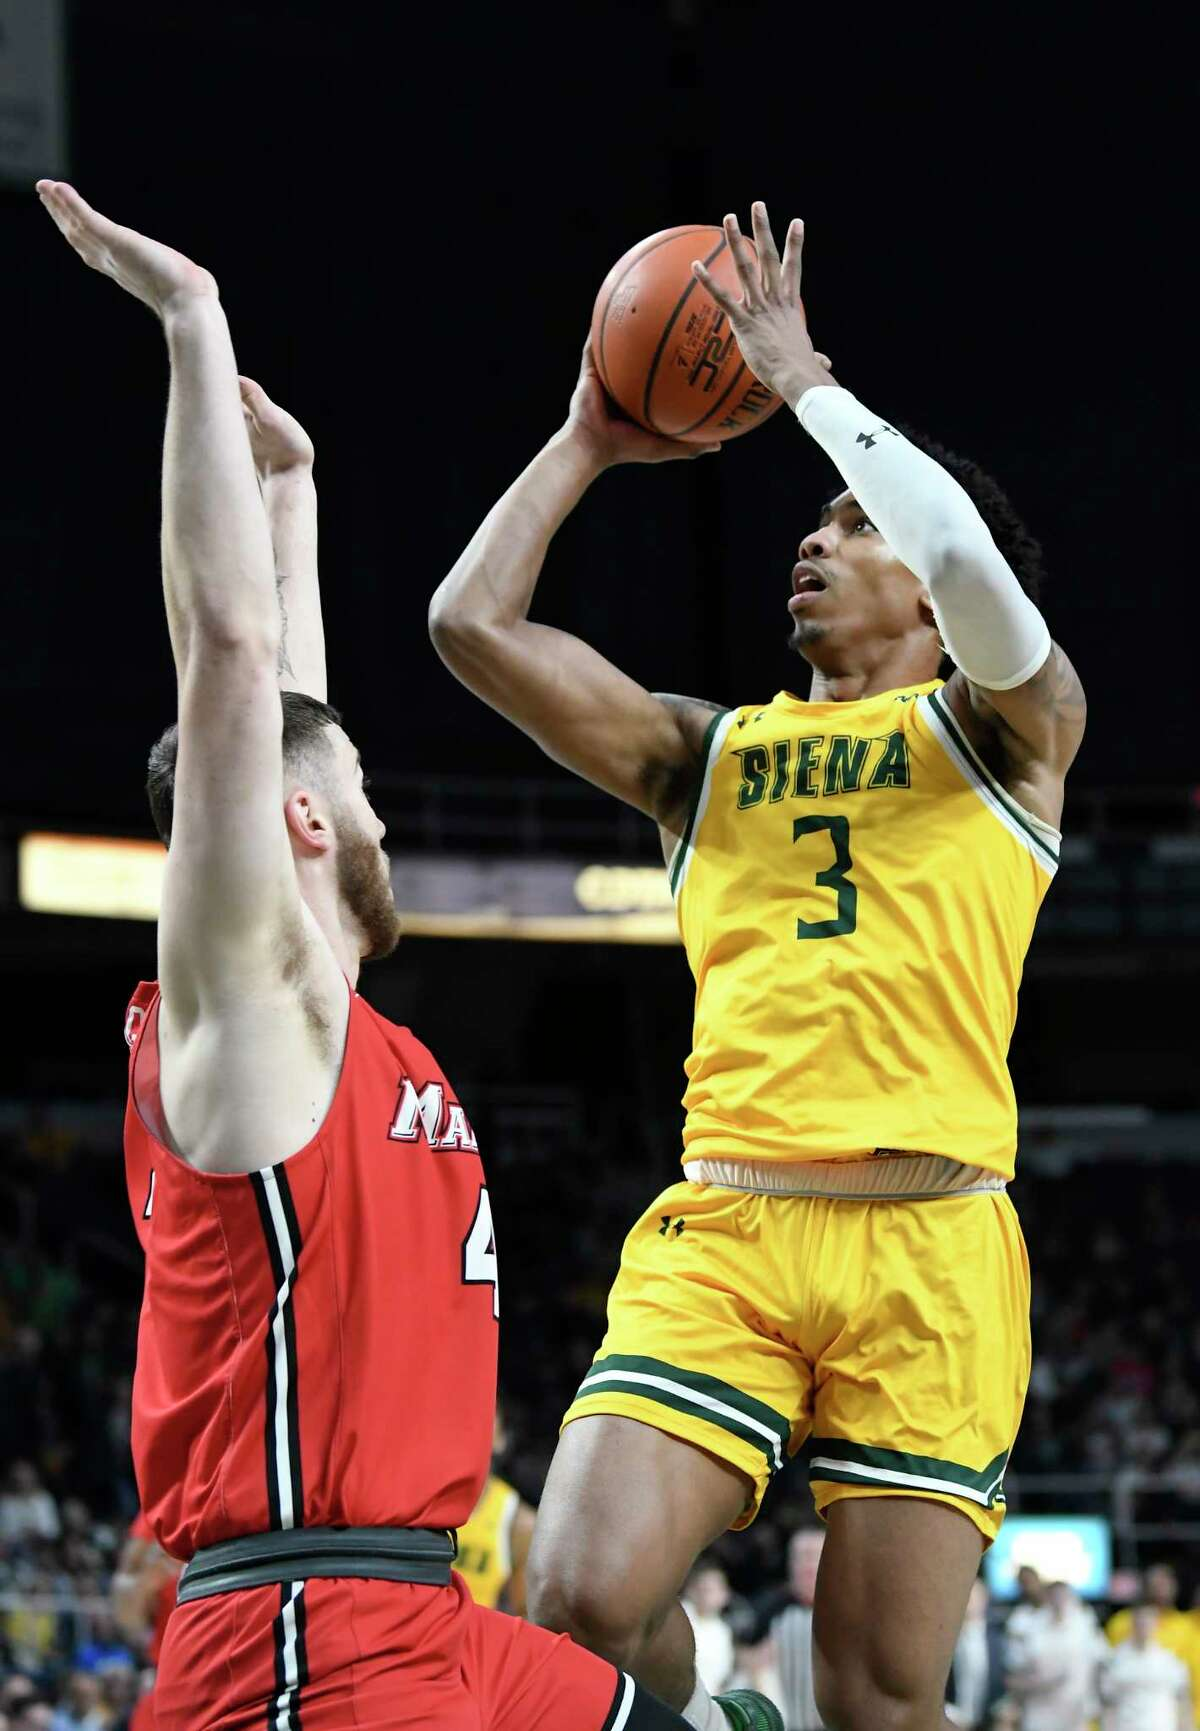 Siena guard Manny Camper (3) puts a shot over Marist guard Tyler Sagl (4) during the first half of an NCAA basketball game Friday, Jan. 24, 2020, in Albany, N.Y. (Hans Pennink / Special to the Times Union) ORG XMIT: 012520_siena_HP109